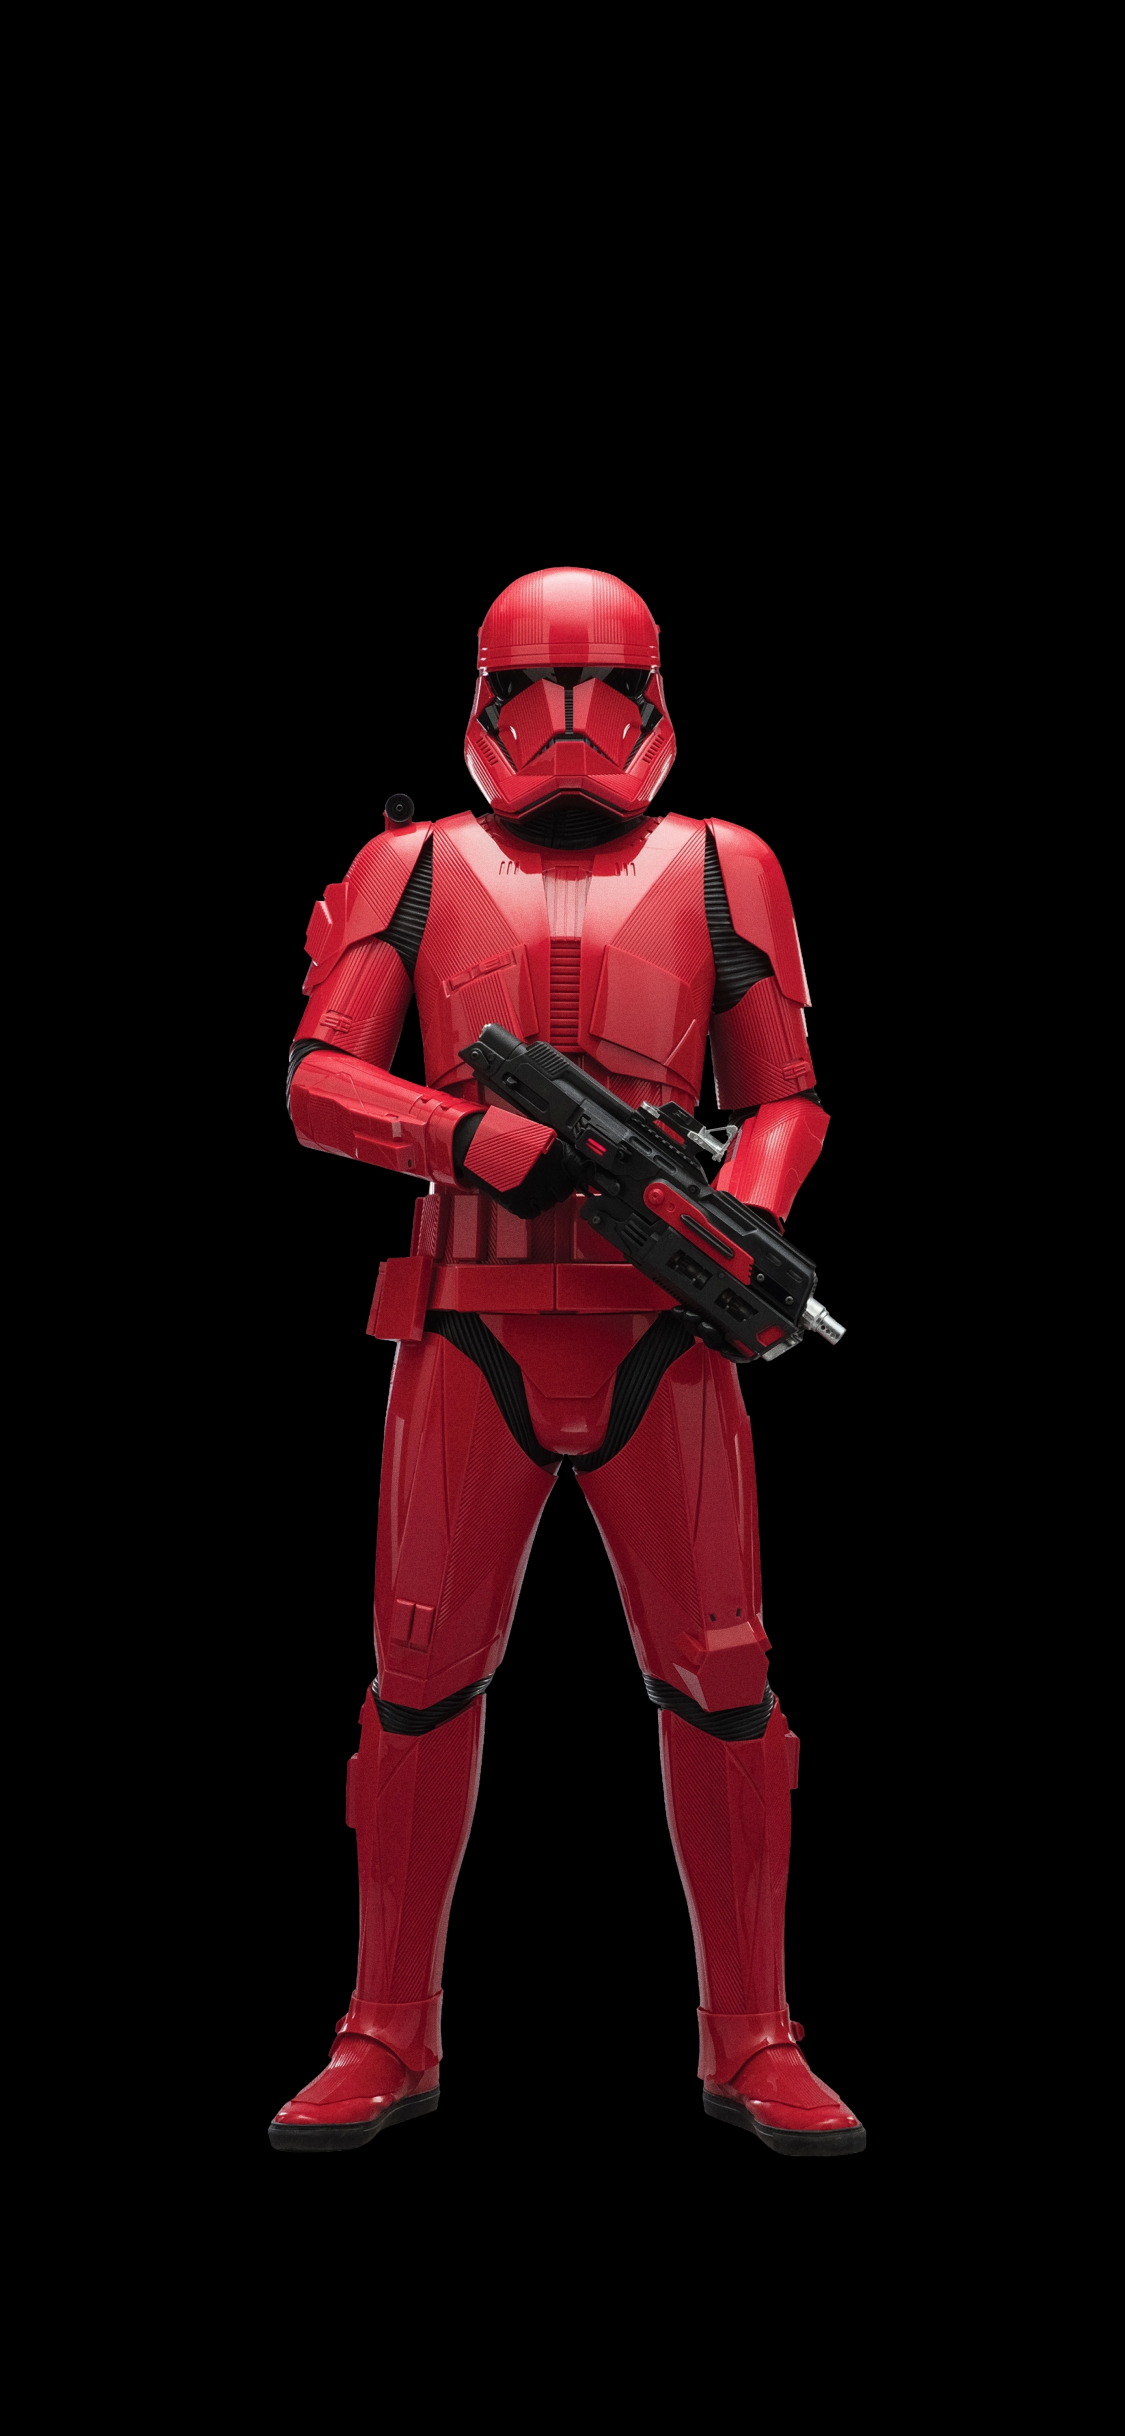 Download 1125x2436 Wallpaper Star Wars The Rise Of Skywalker Sith Trooper Stormtrooper Iphone X 1125x2436 Hd Image Background 23132